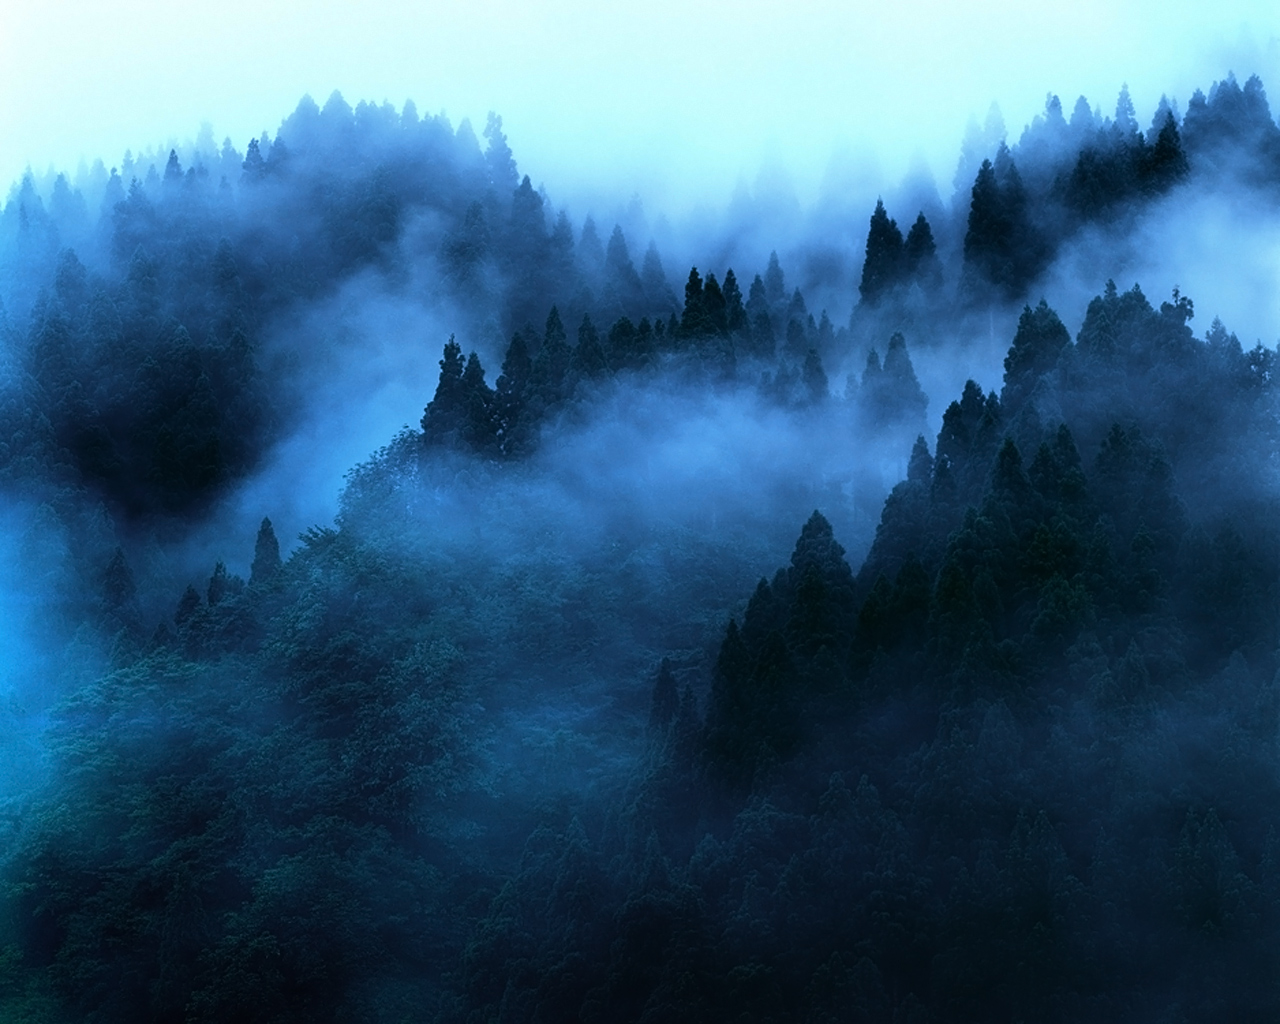 Bing Hd Wallpaper Fall Blue Morning Mist You Re Safer From Male Serial Killers